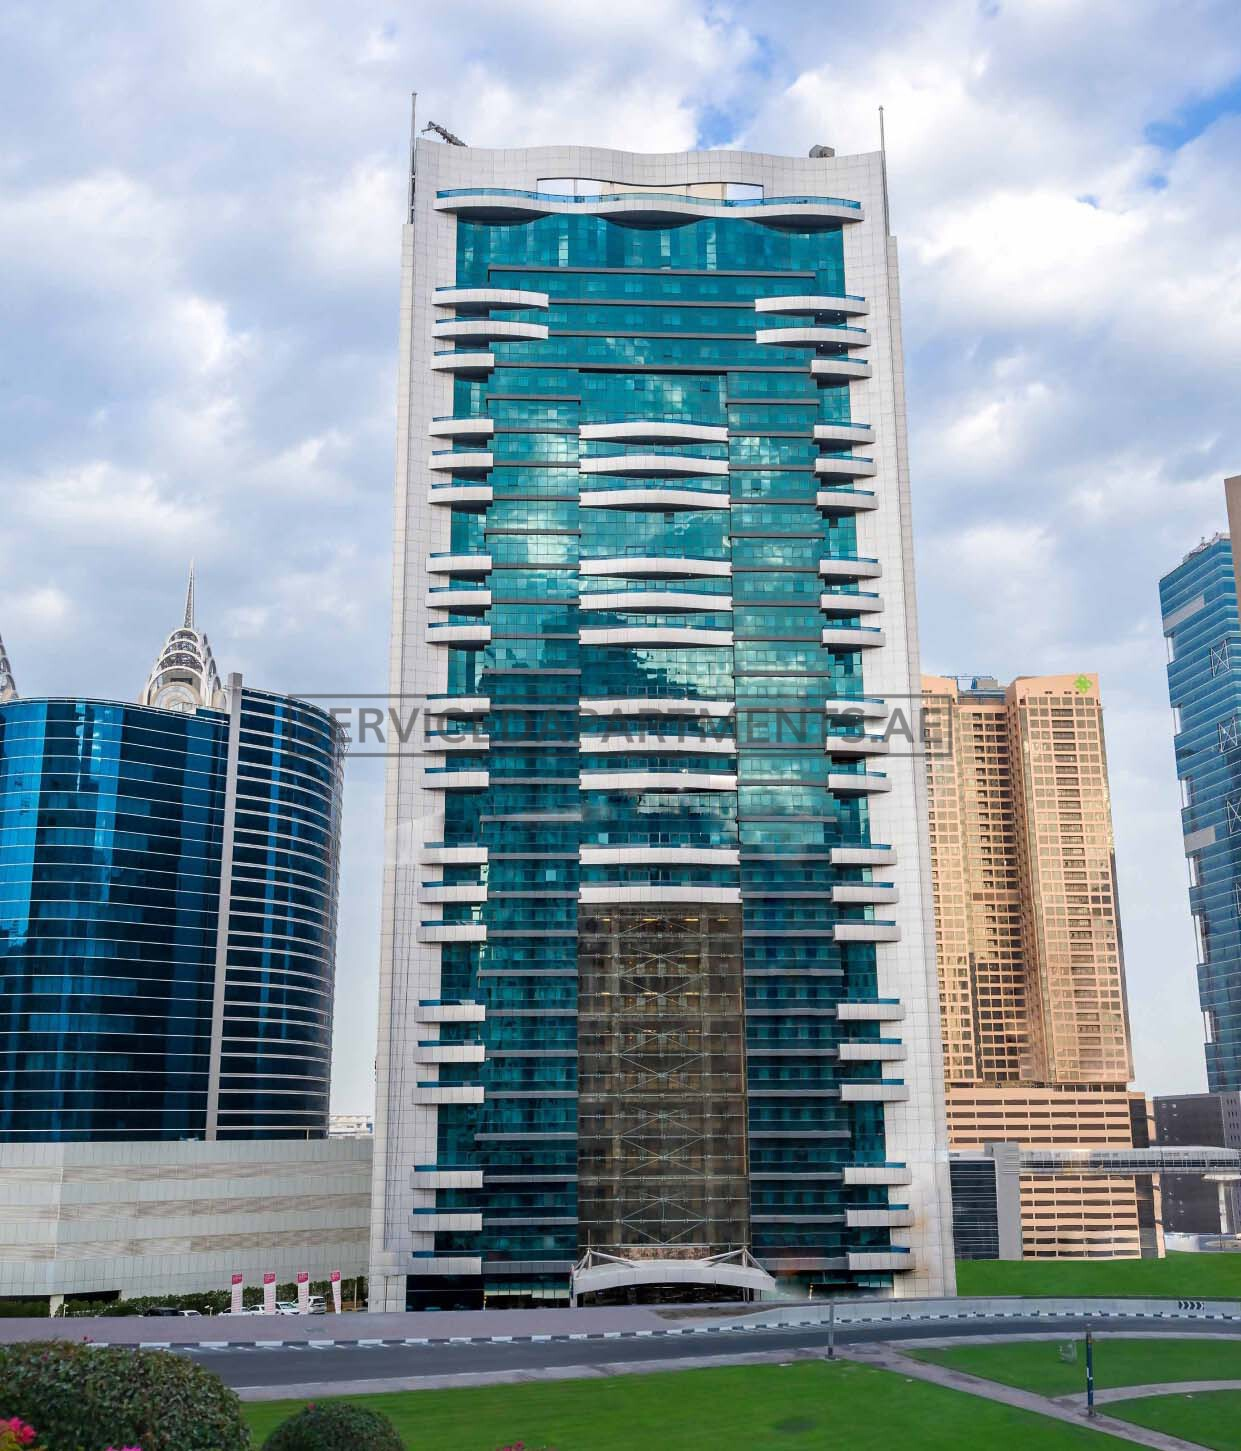 Furnished Studio Apartments: Studio Serviced Hotel Apartments For Rent In Dubai